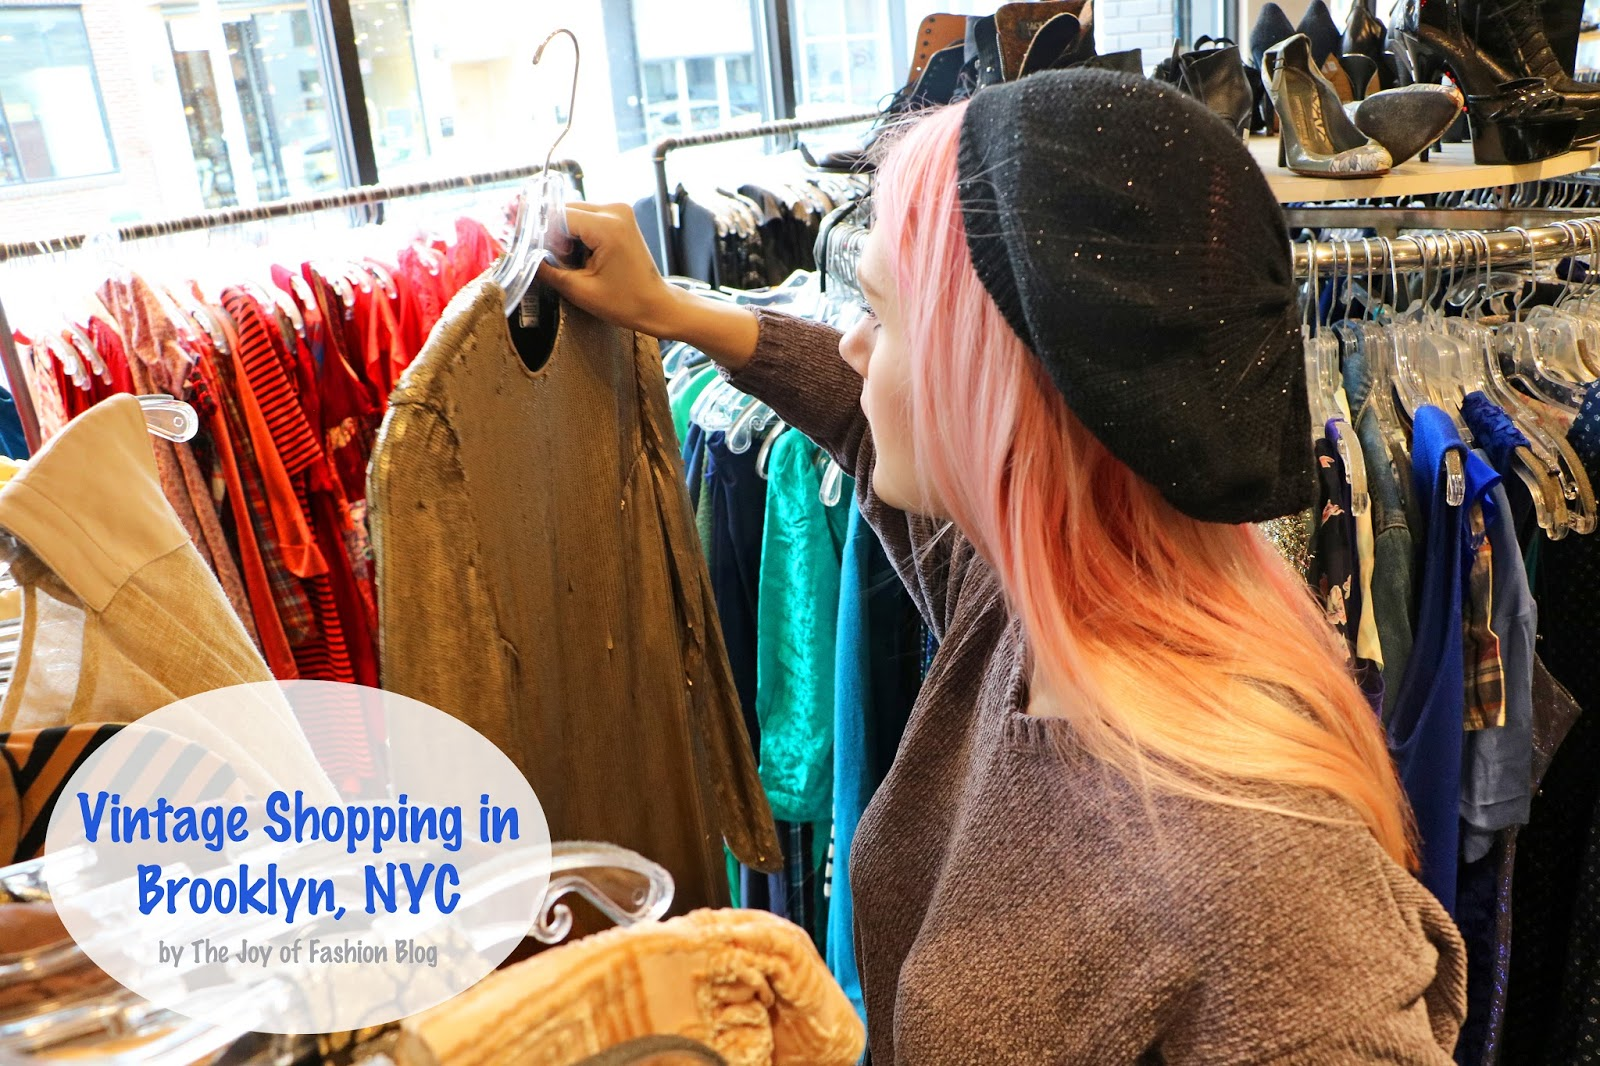 When visiting Brooklyn New York, be sure to check out Beacon's Closet for some amazing Vintage and second-hand clothing!